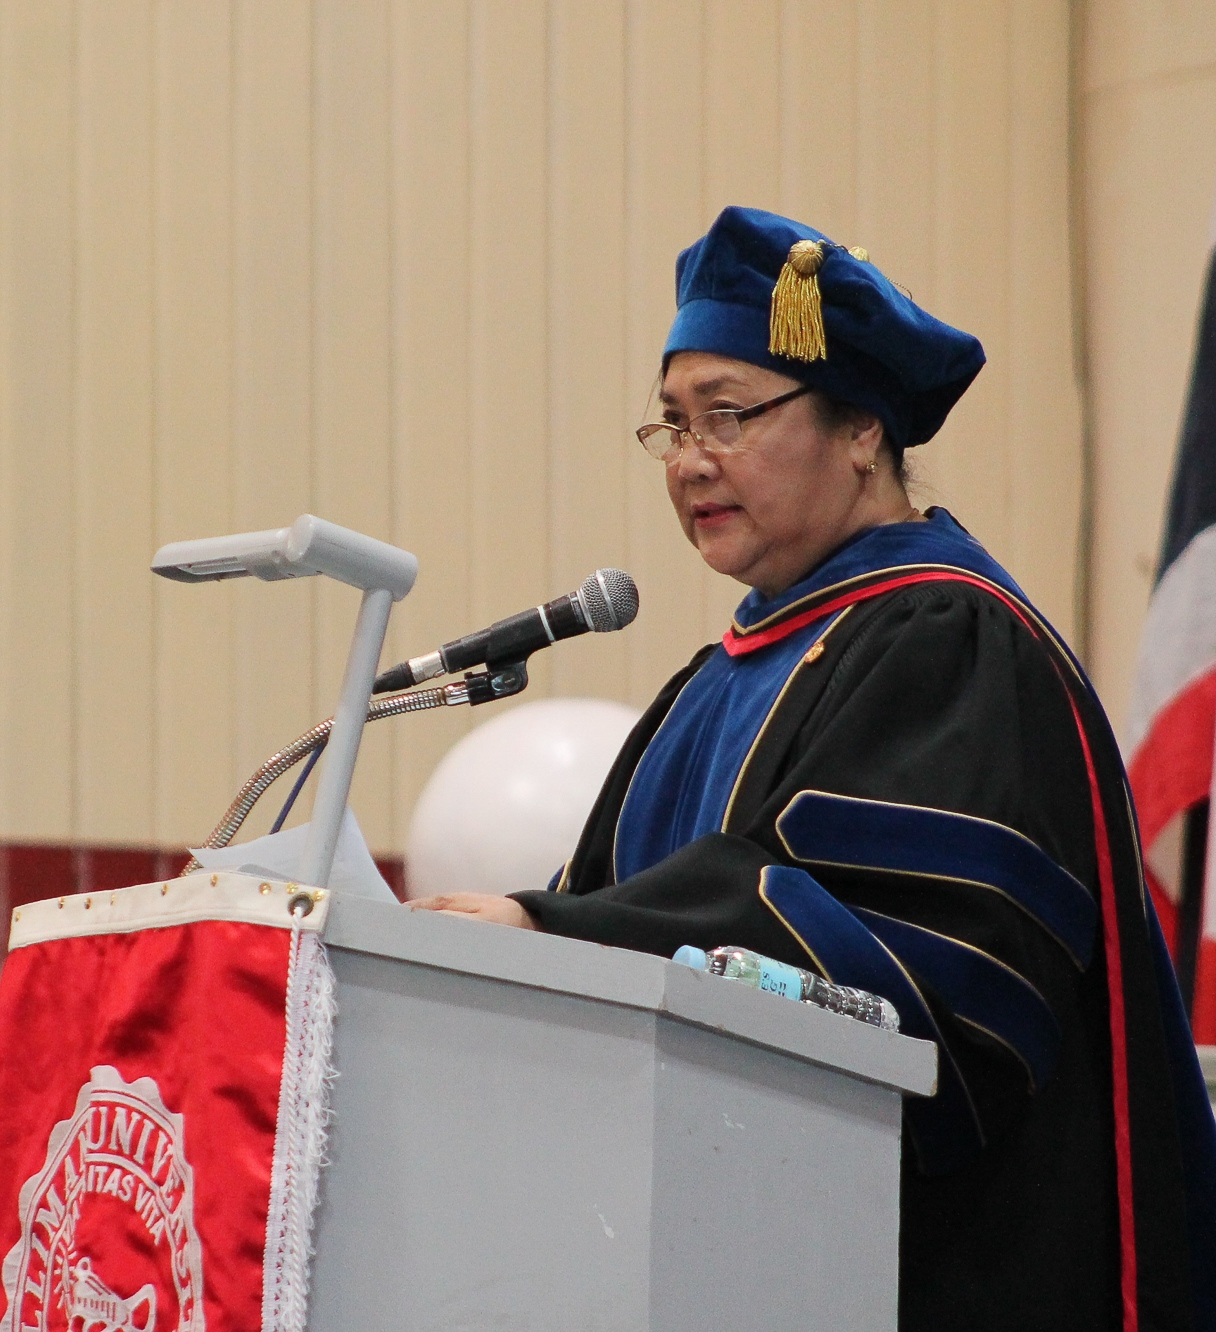 Dr. Tan to Graduates: 'What Does the World Expect of a Silliman Graduate?'